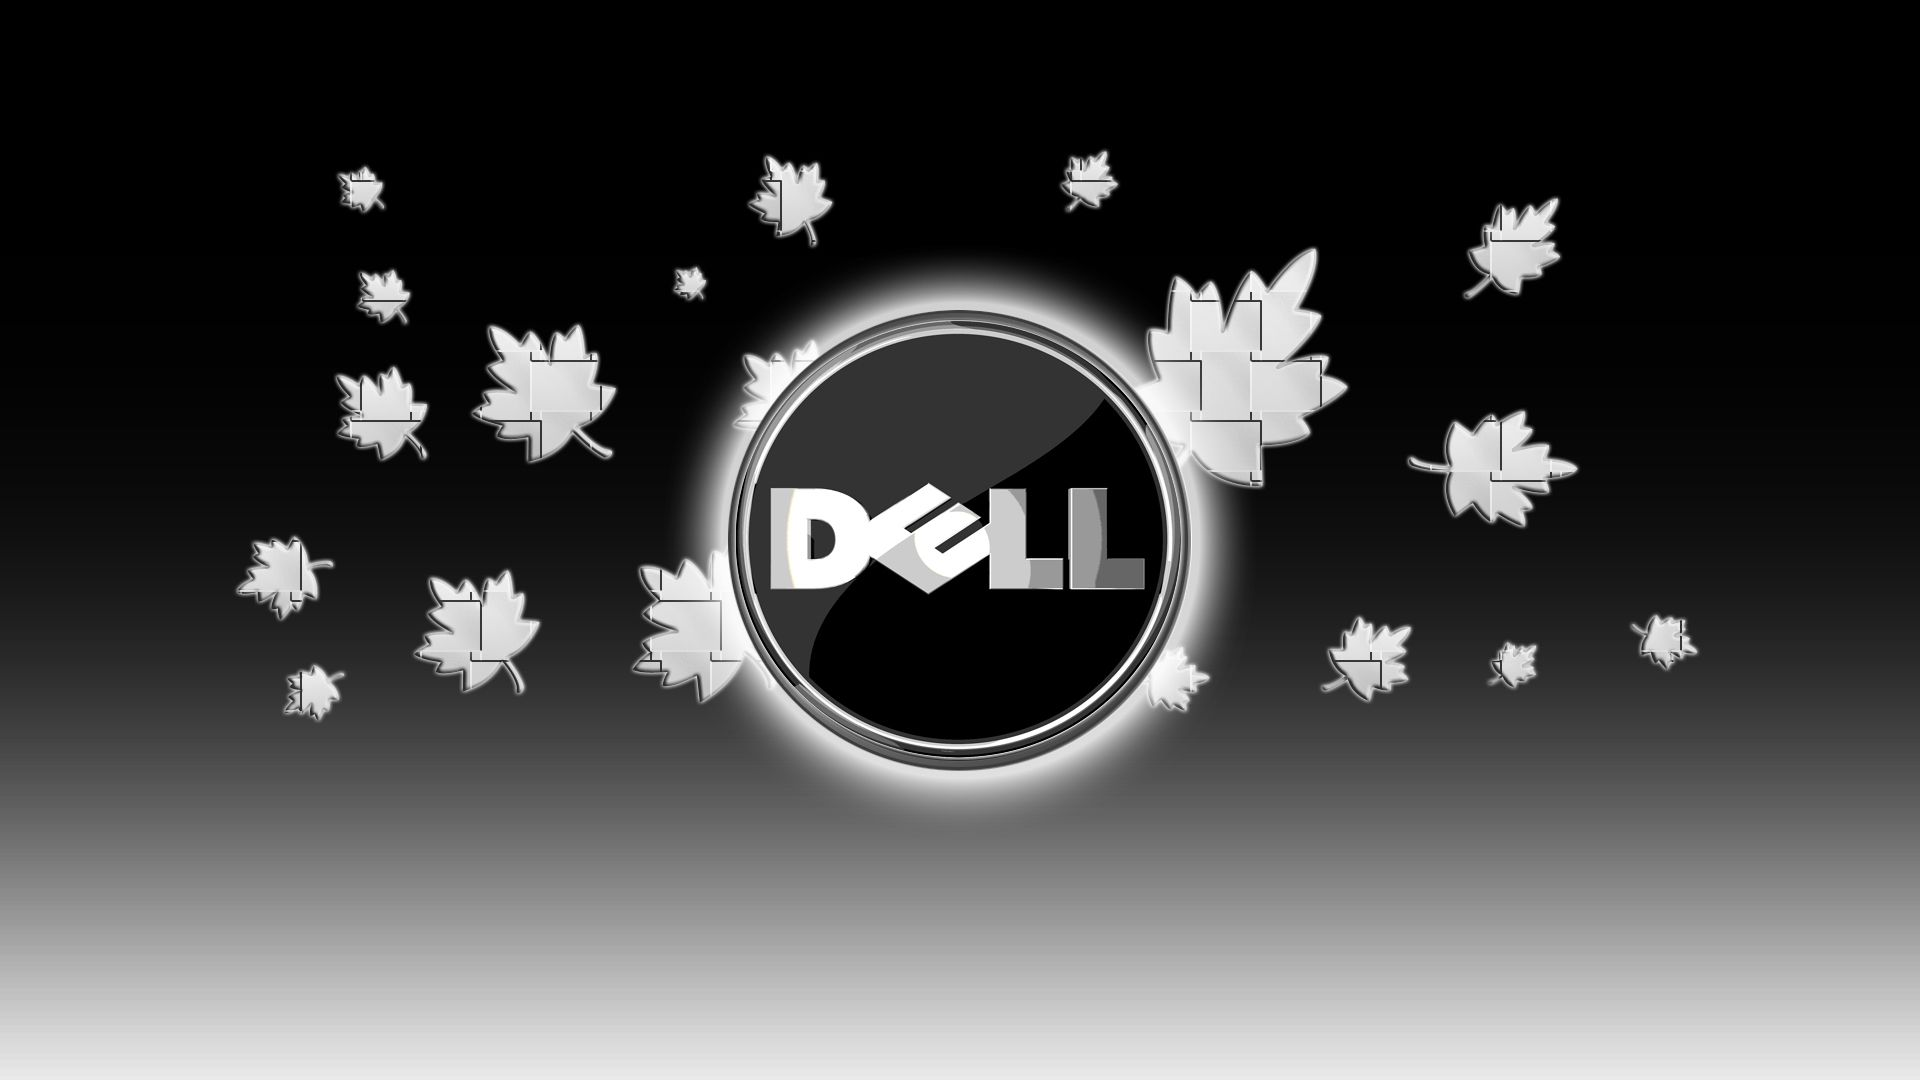 Dell Hd Wallpaper 1600x1200 HD Backgrounds 57 Wallpapers